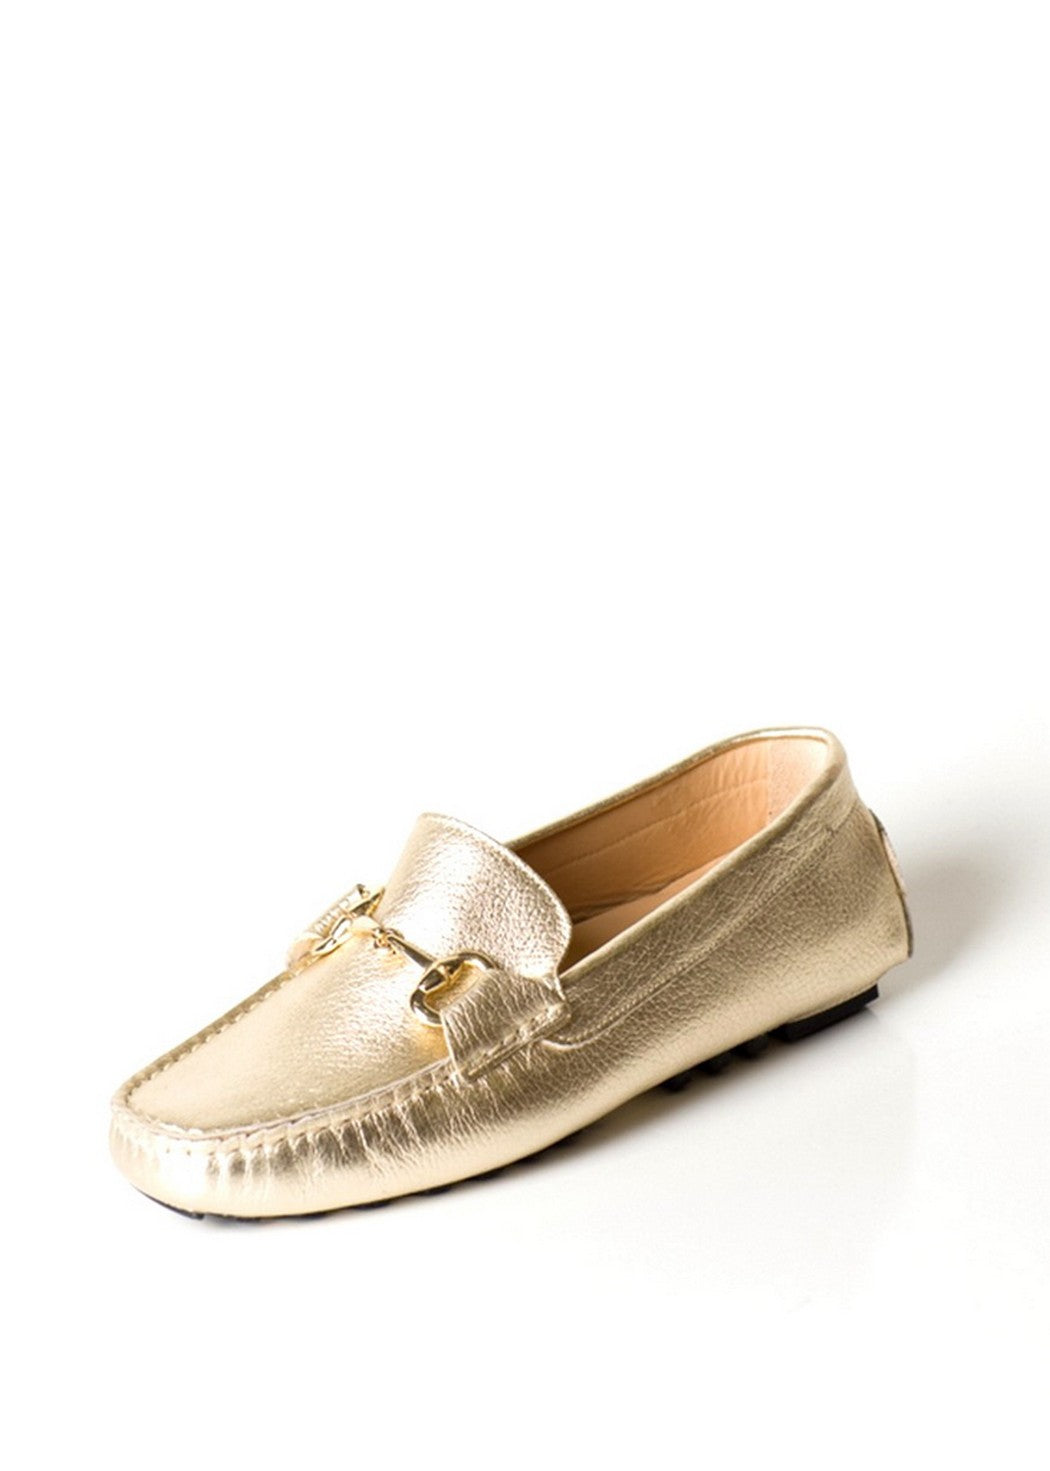 gold loafer driving loafer comfort loafer womens italian leather loafer australia adelaide